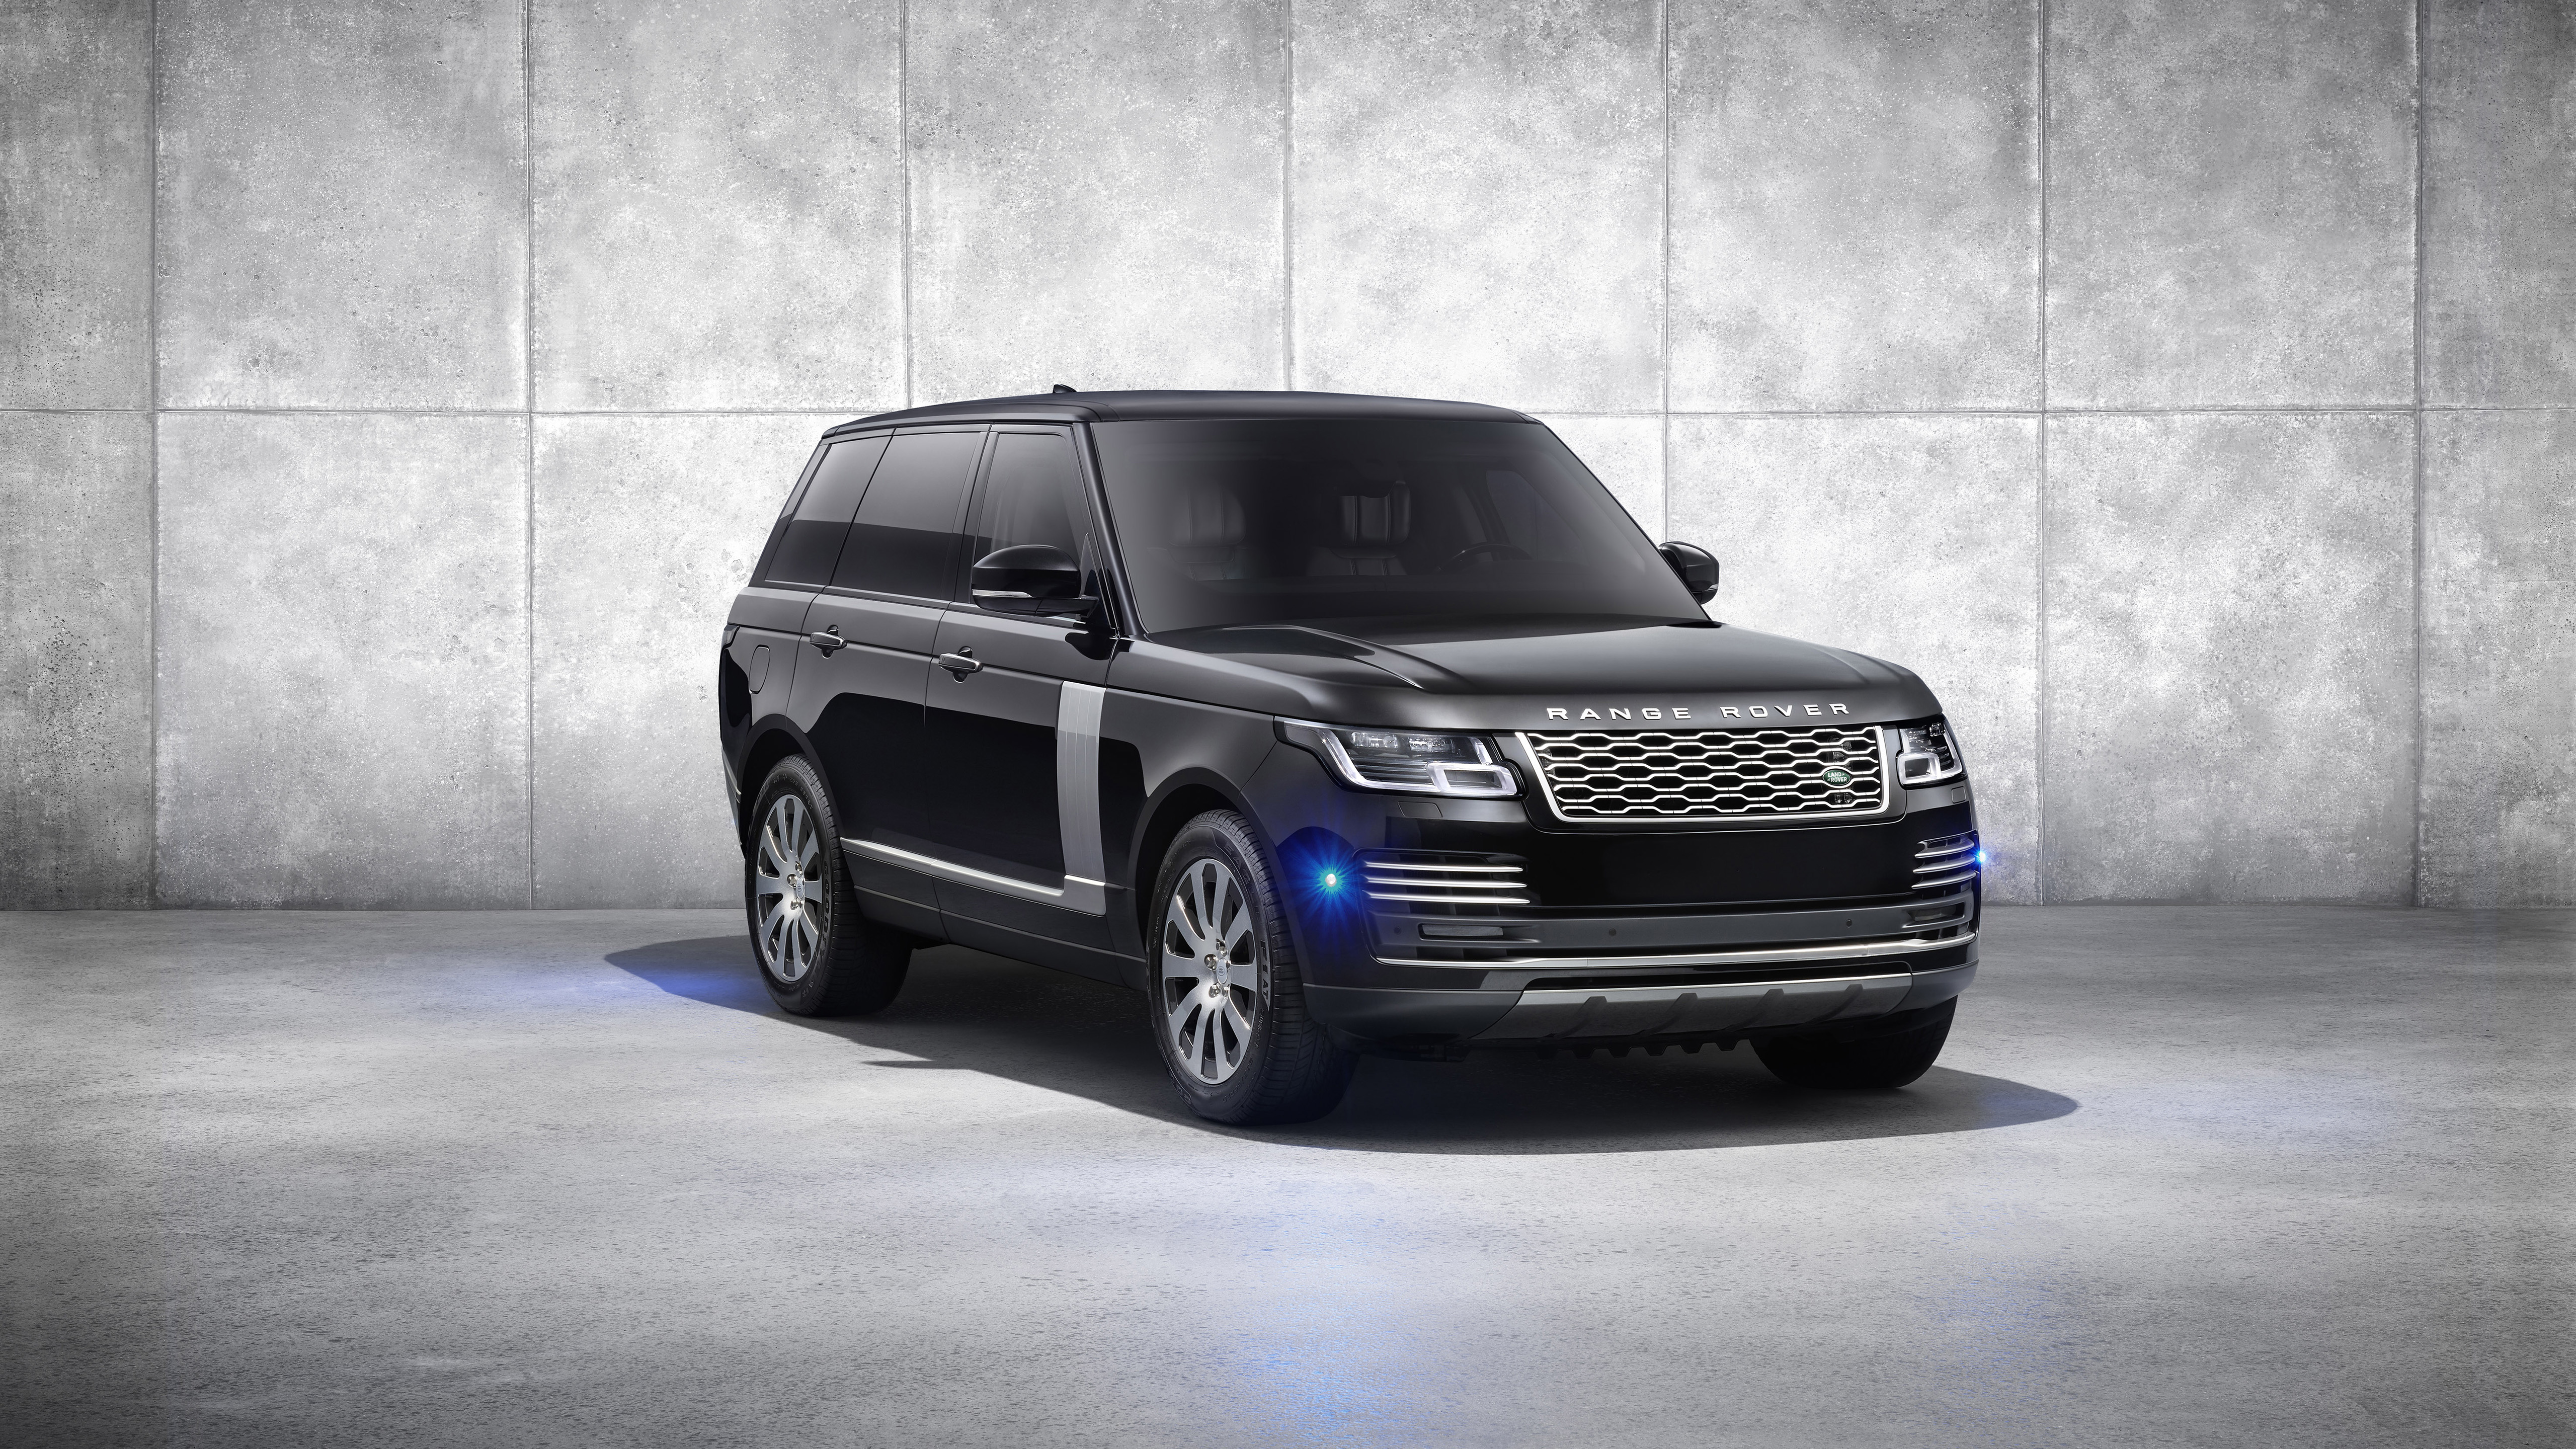 RANGE ROVER SPORT ENHANCED WITH SPECIAL-EDITION